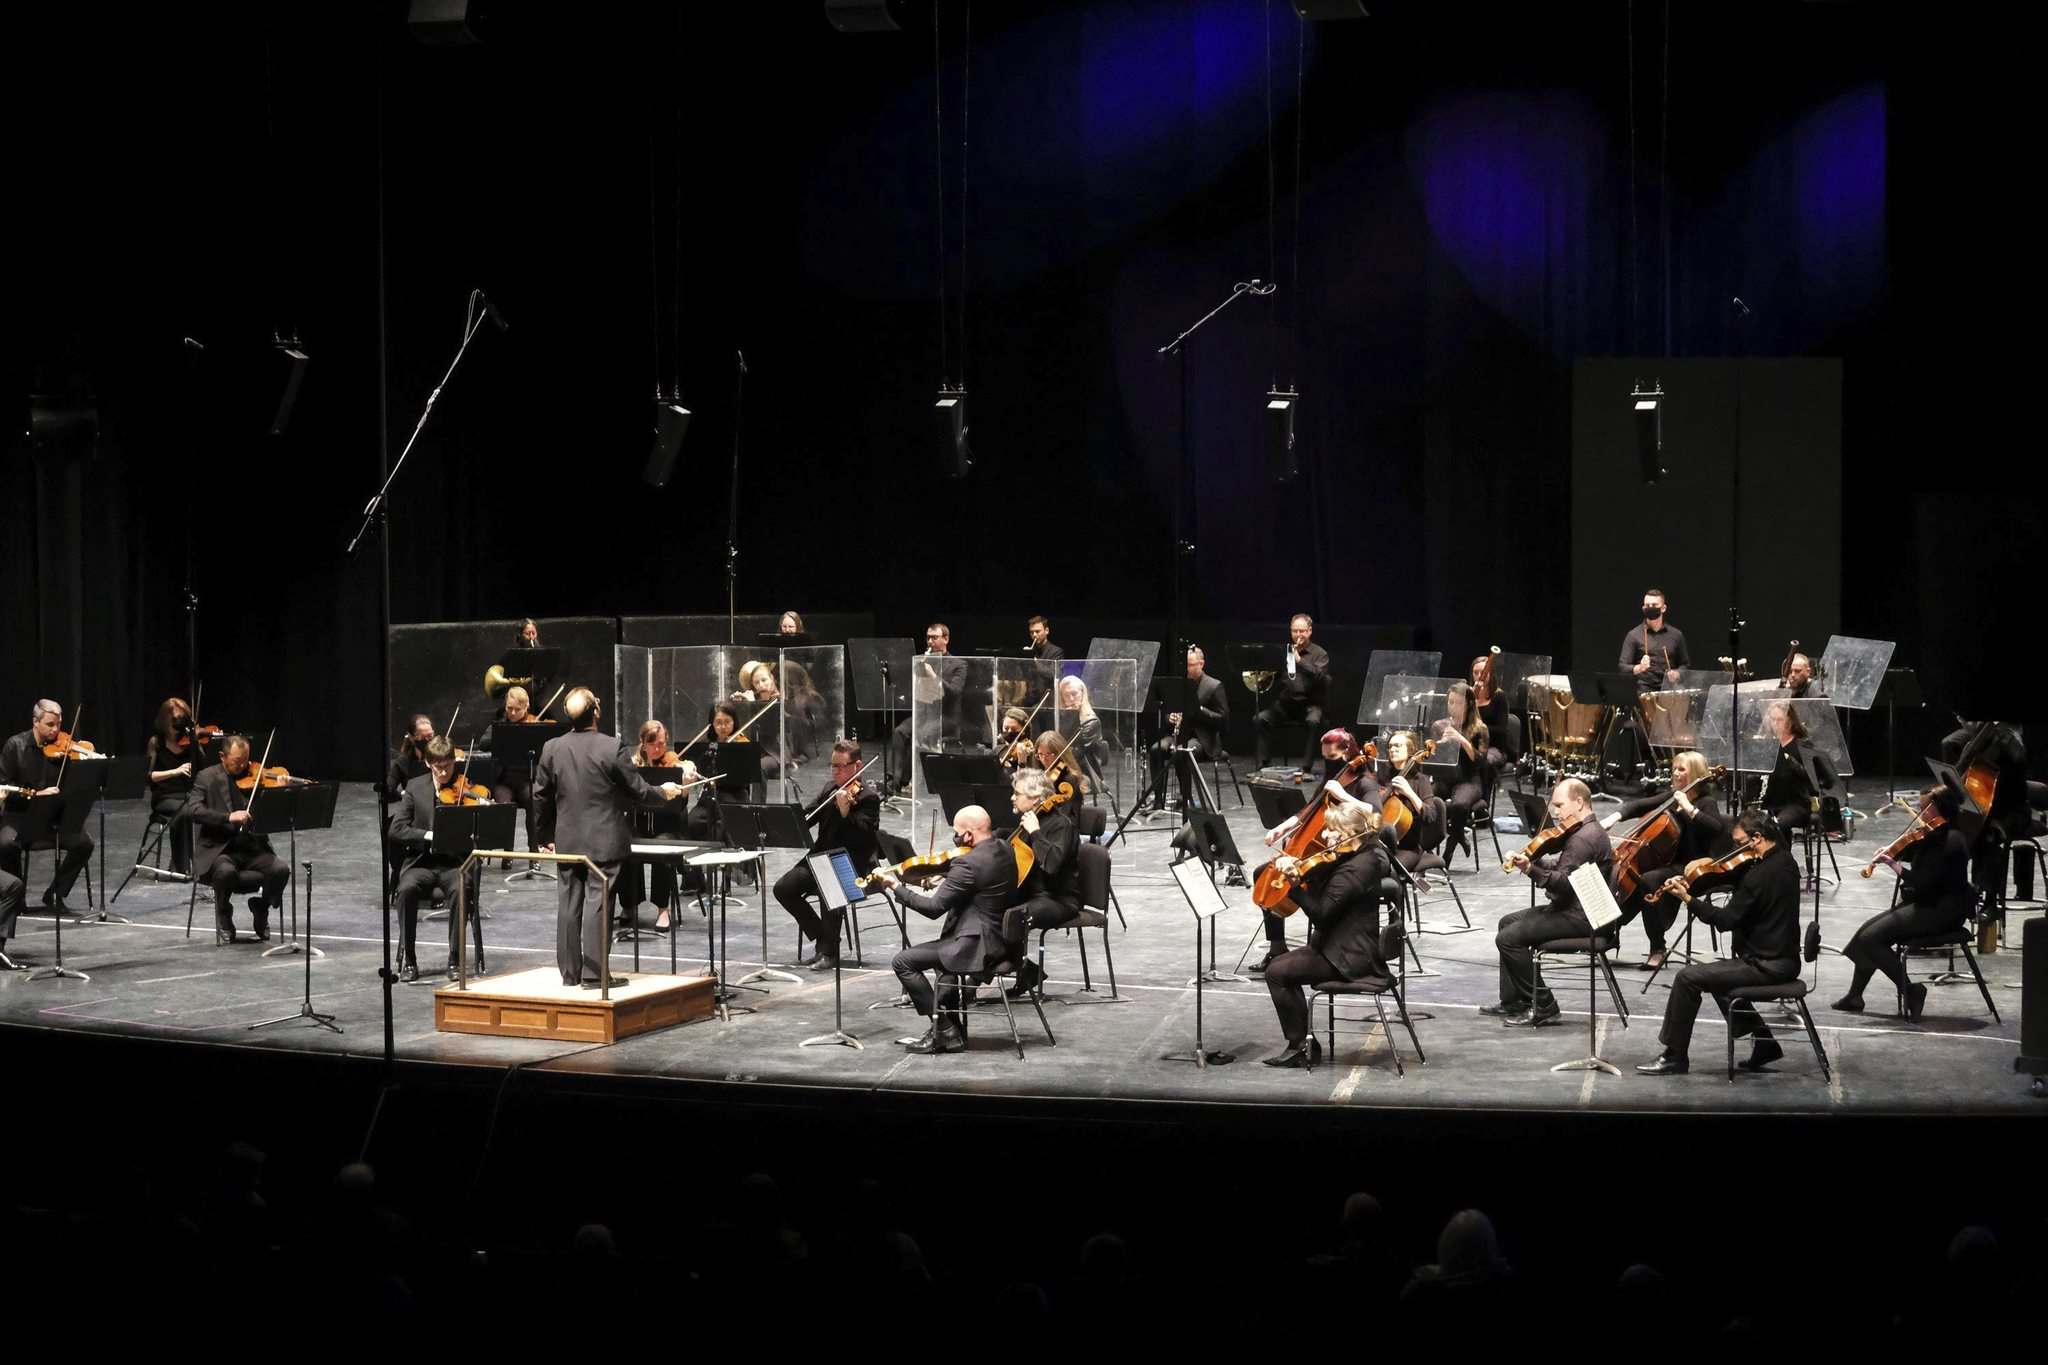 (Daniel Crump / Winnipeg Free Press)</p><p>The WSO opening night featured COVID protective measures in place.</p>